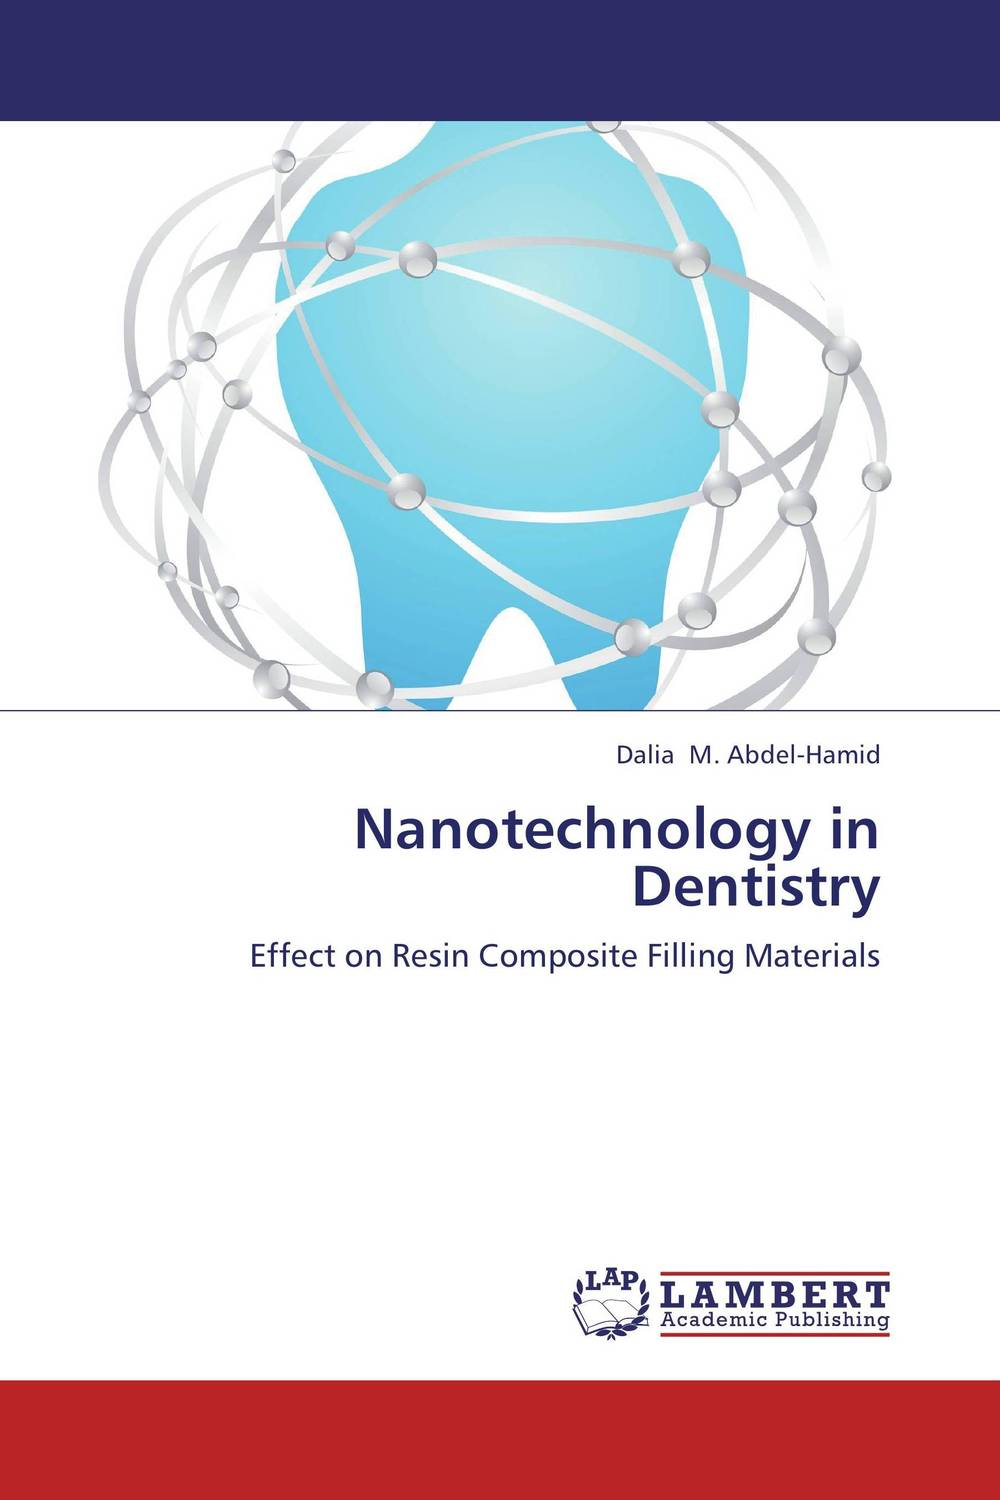 Nanotechnology in Dentistry simranjeet kaur amaninder singh and pranav gupta surface properties of dental materials under simulated tooth wear